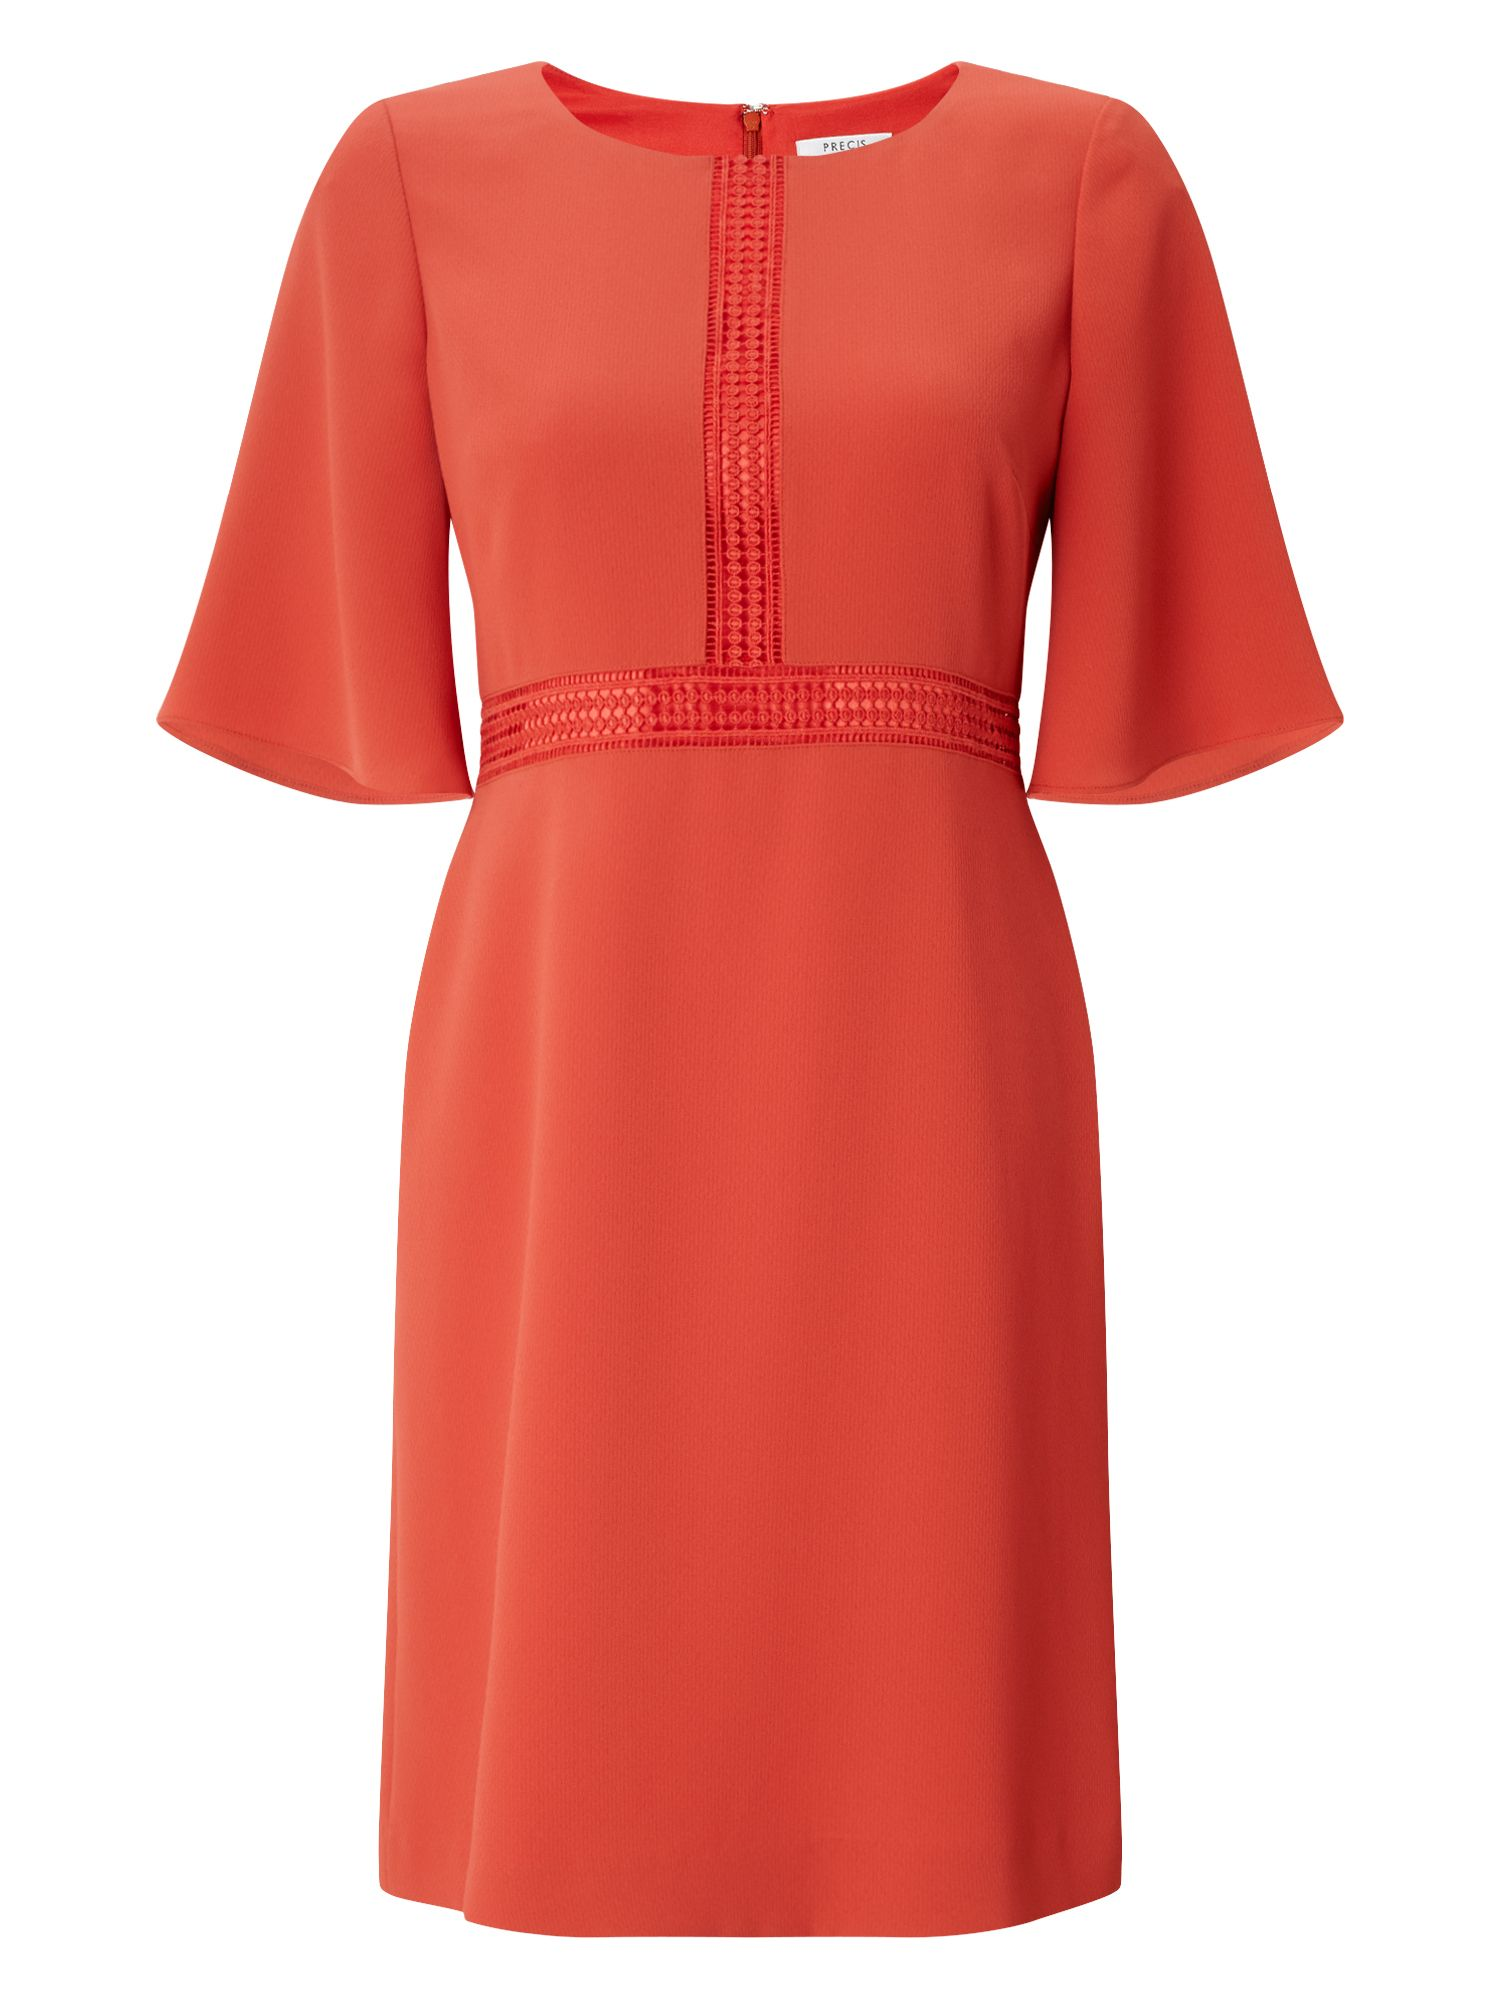 Precis Petite Petite Bell Sleeve Dress, Dark Orange